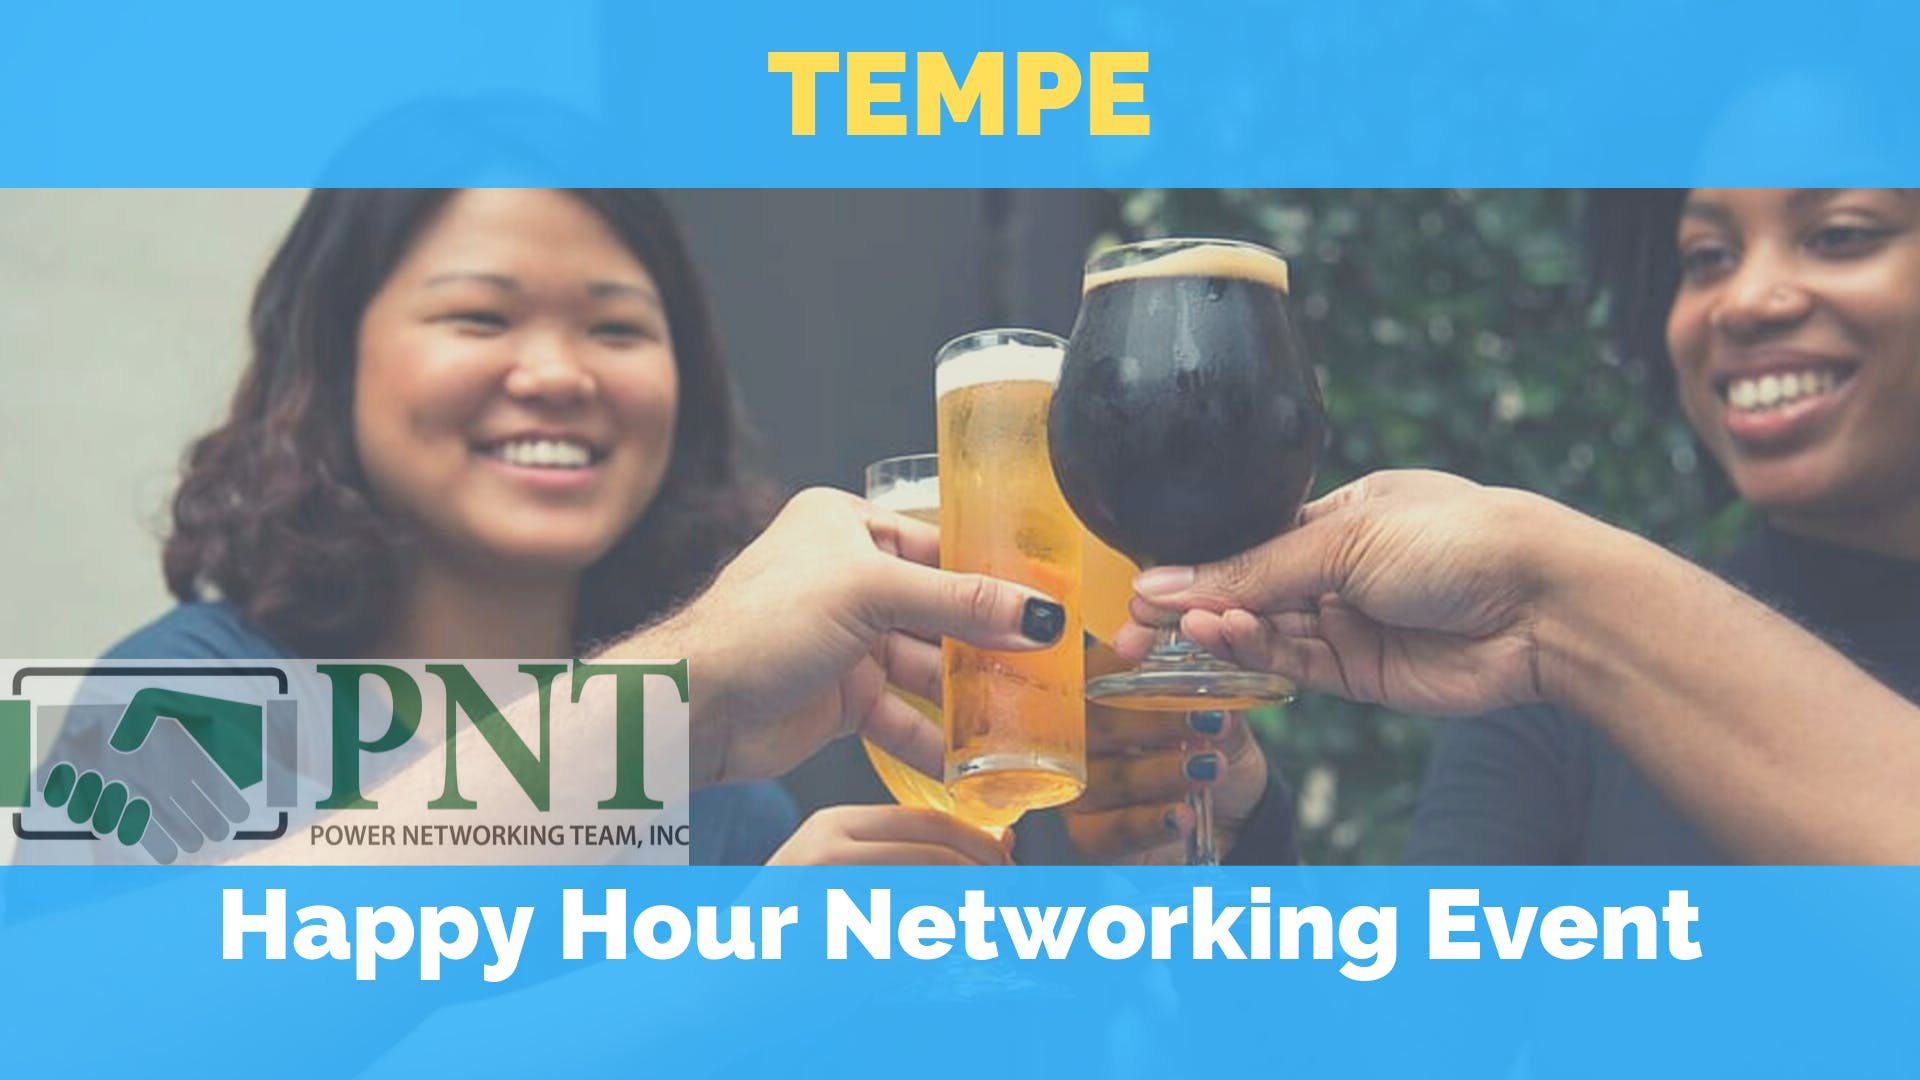 10/24/19 PNT Tempe Chapter - Happy Hour Networking Event